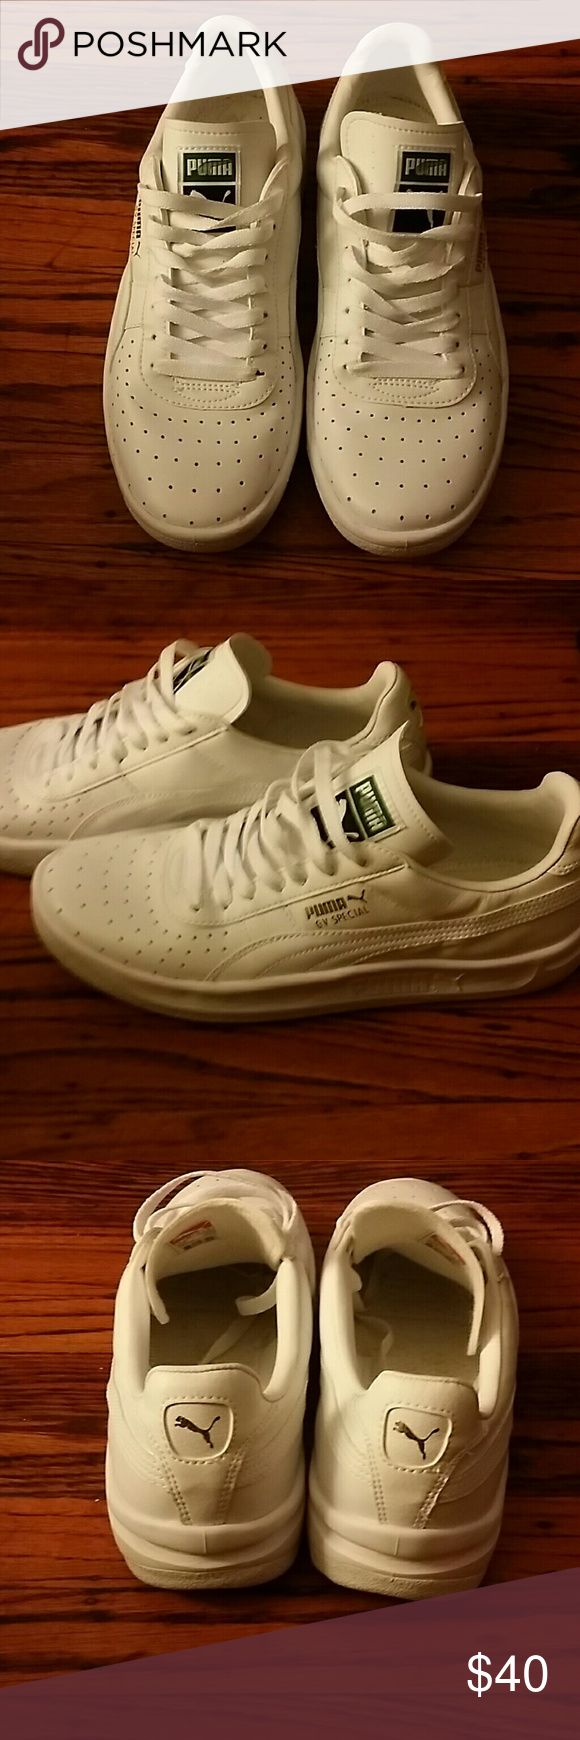 Mens Puma Sneakers Men's White  GV Special White Puma Sneakers...great, like new condition.. PUMA Shoes Sneakers